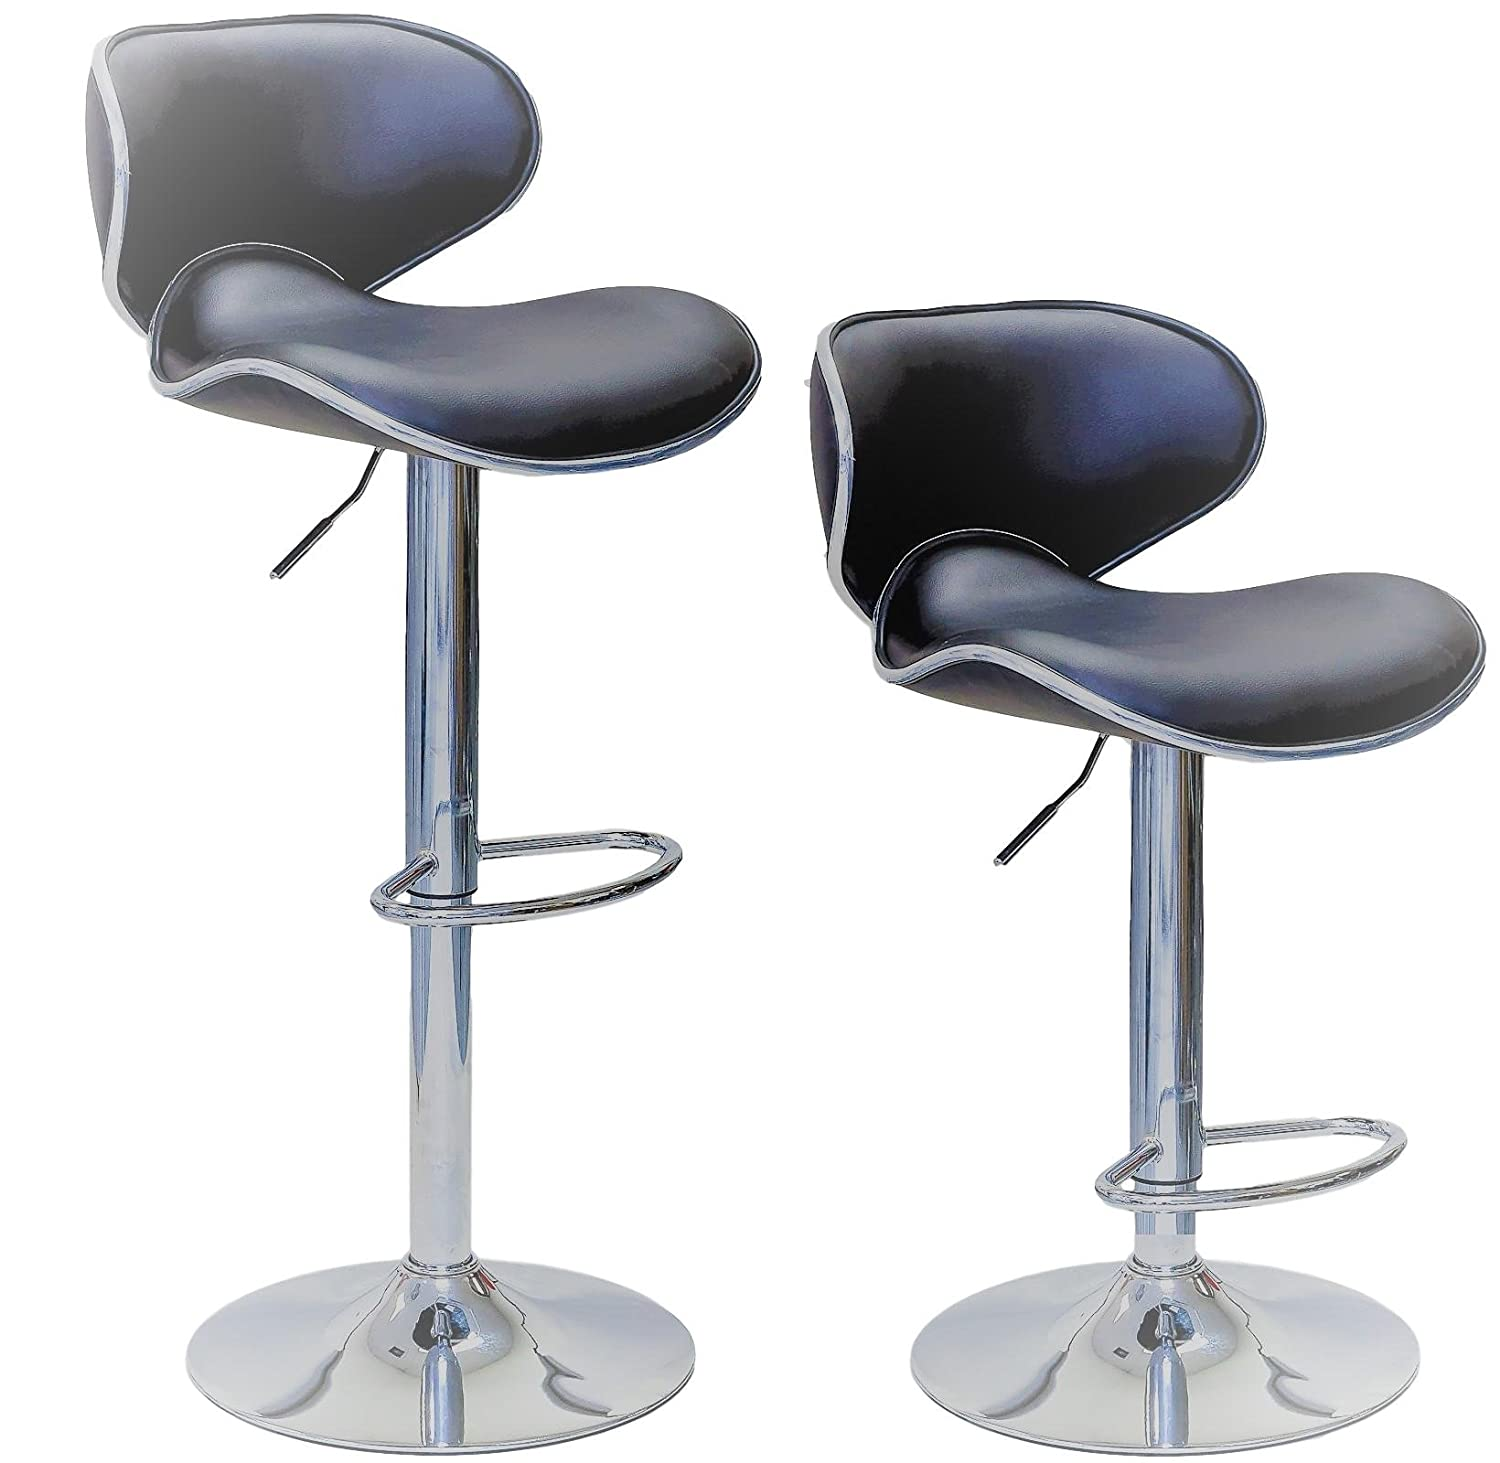 ViscoLogic® Series Oasis Height Adjustable Leatherette Saddle Style Seat and High Back Rest 360 Swivel 24 to 33 inch Bar Stool with Chrome Pole & Base with Hard Floor Protection Plastic (Set of 2 Stools) (Grey)